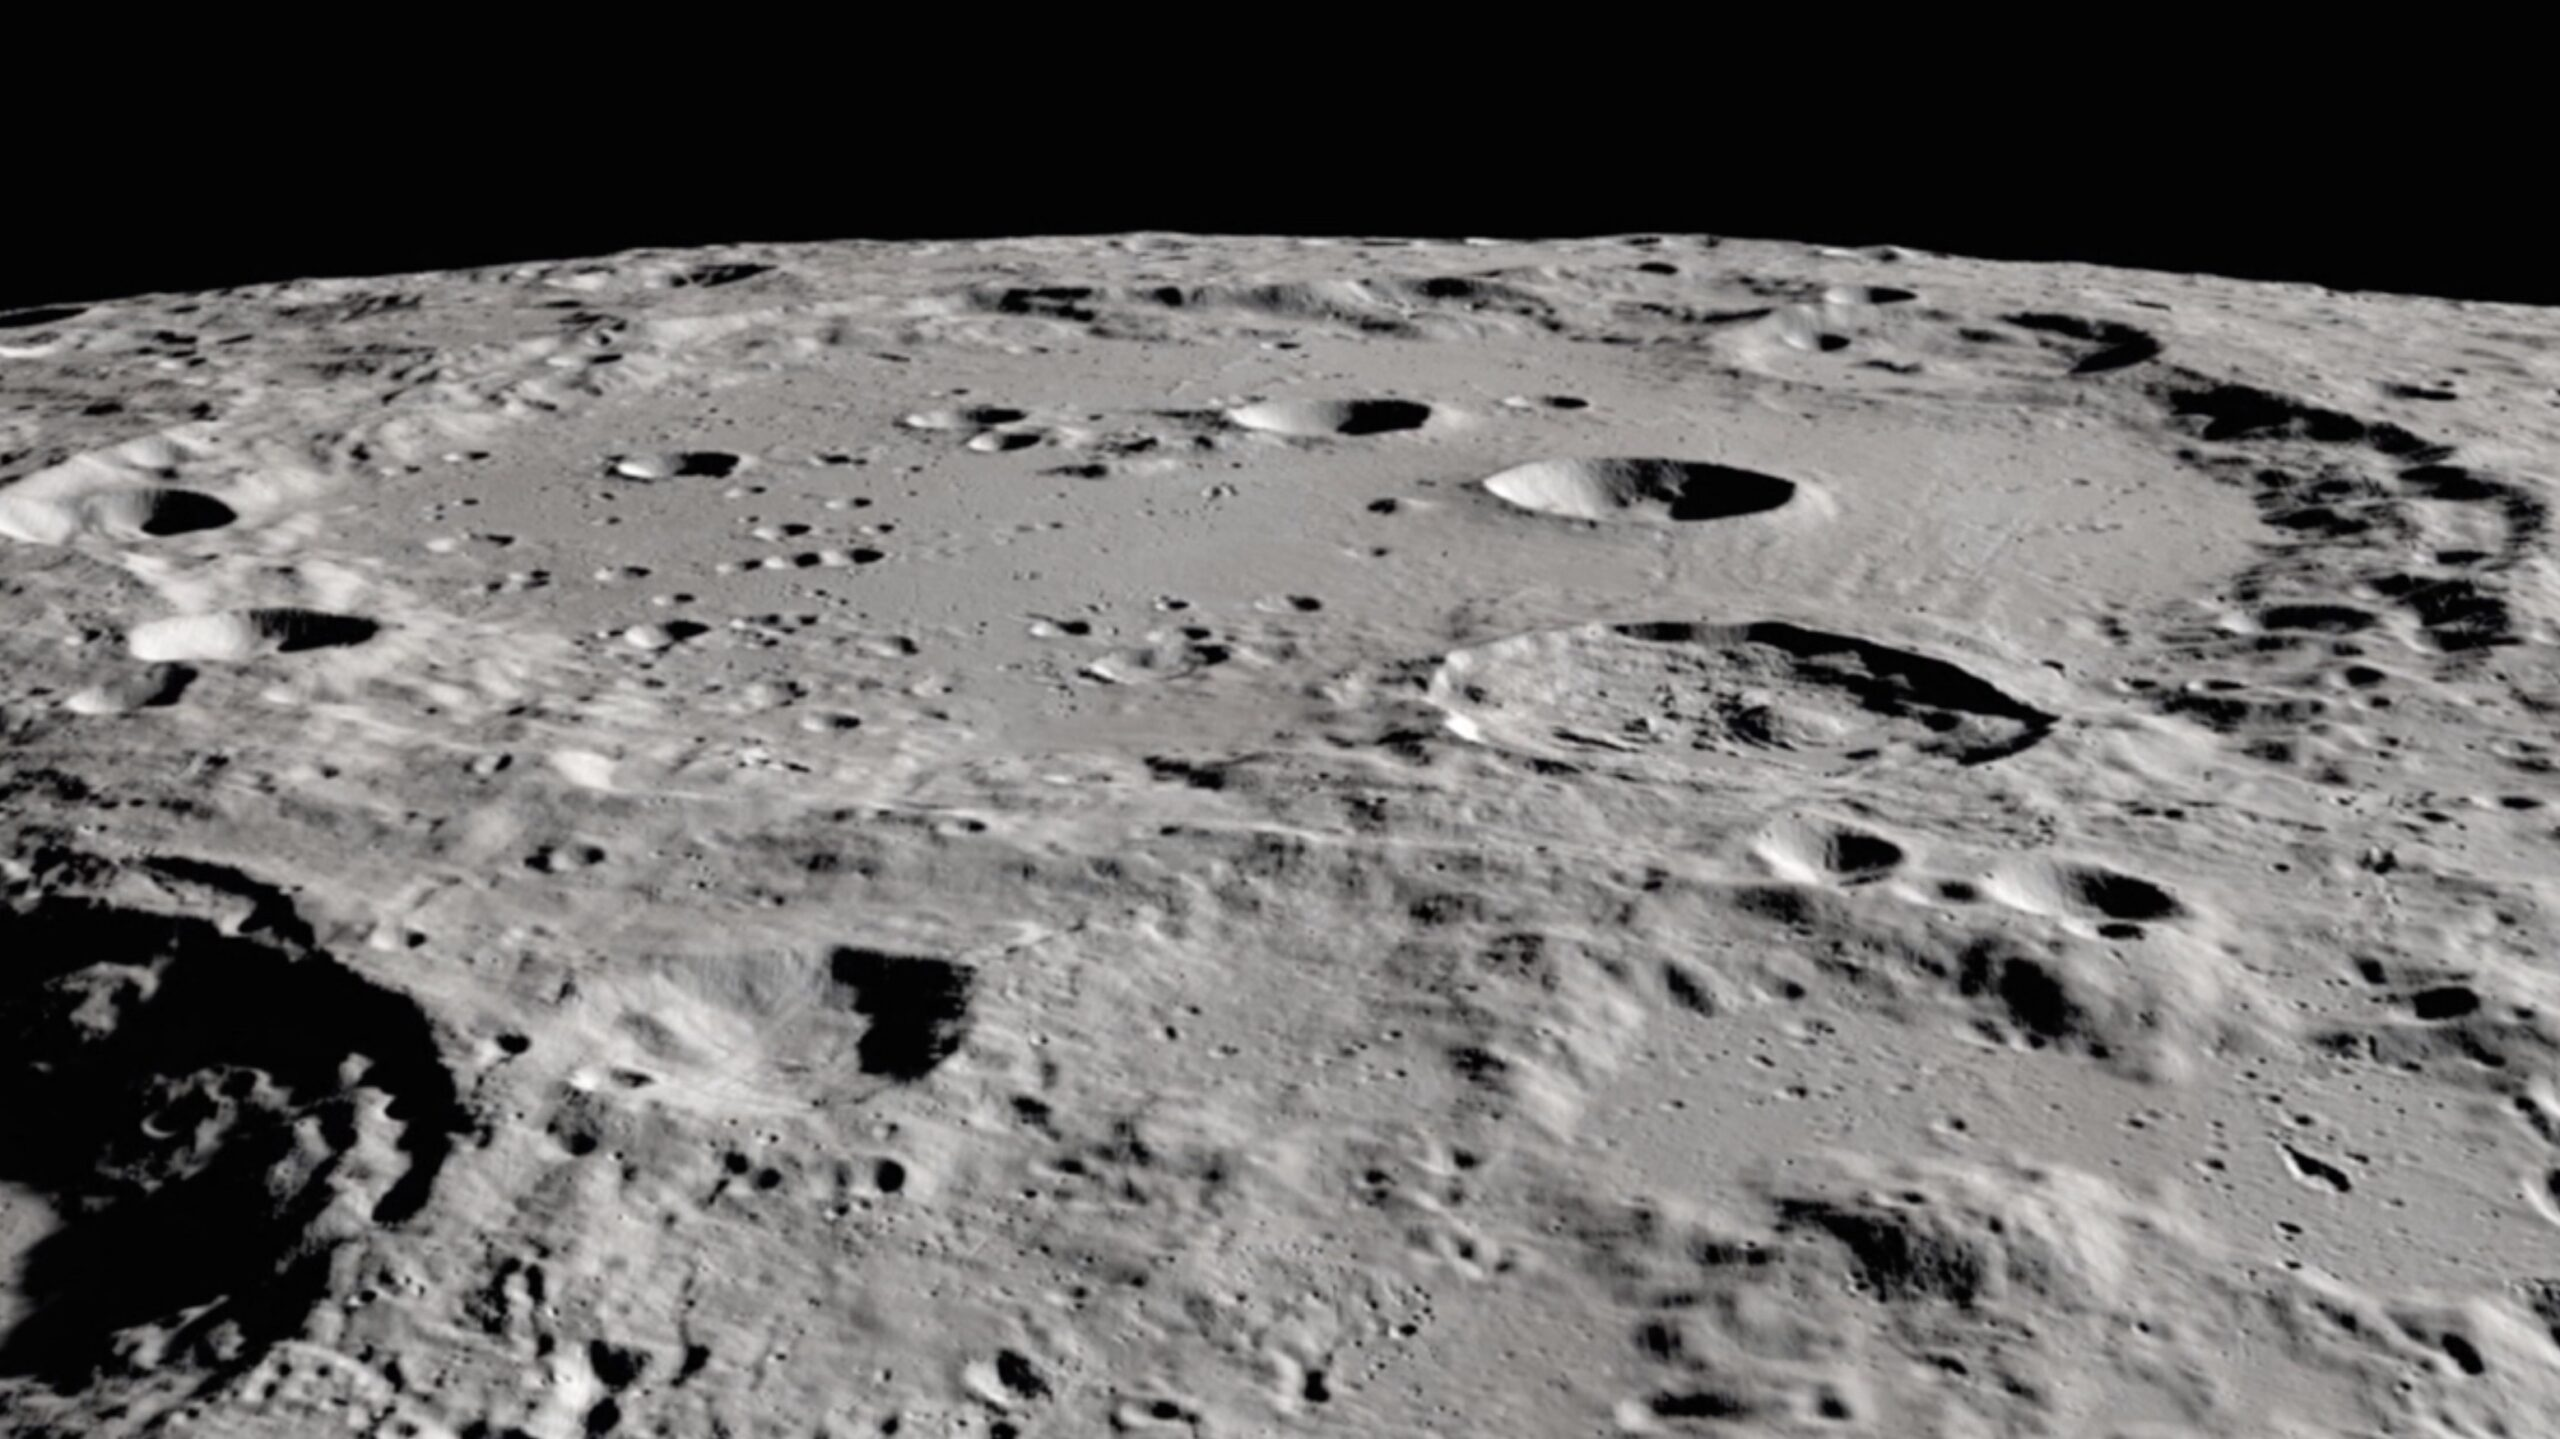 NASA is planning a return of astronauts to the moon, a mission envisioned as paving the way for a later journey of people to Mars. Accessible sources where water can be found would be beneficial for the crew people.